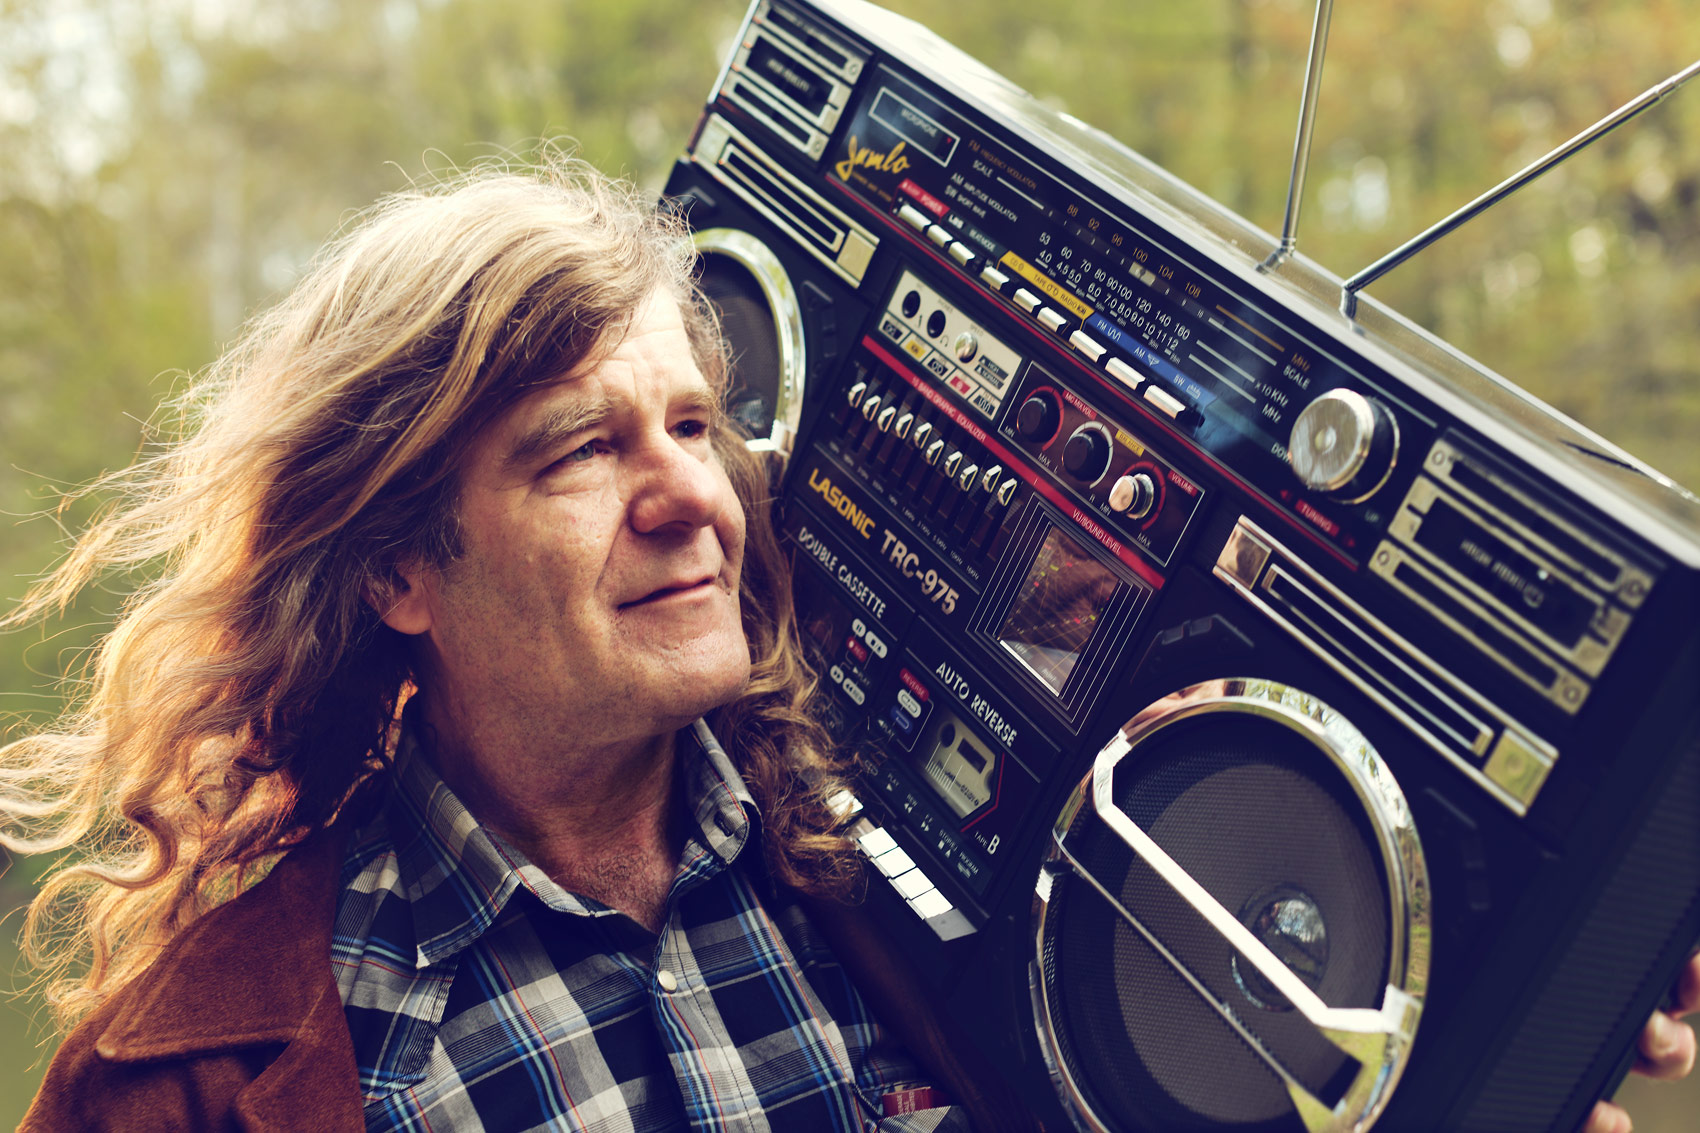 man with long hair holds boombox for washington dc editorial photography